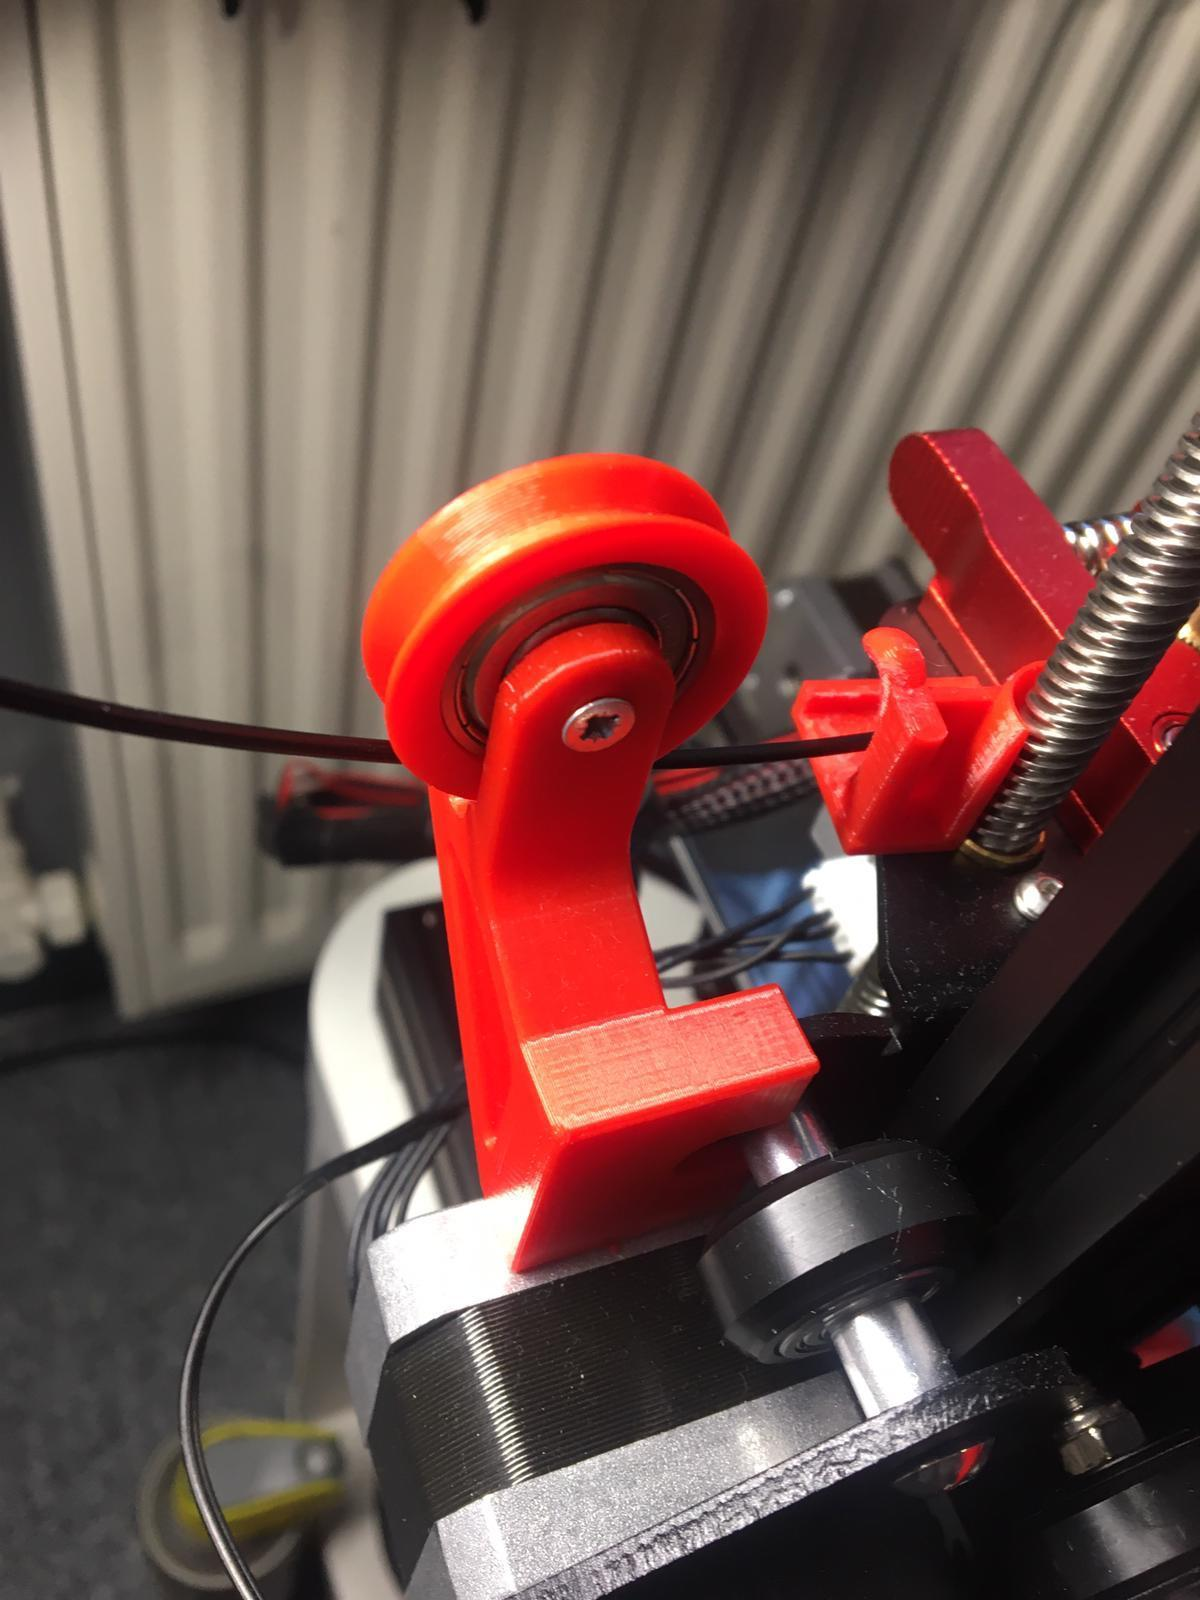 WhatsApp_Image_2020-02-21_at_08.40.30.jpeg Download free STL file Dual spool system (holder, guide, clip) • 3D printer model, 00monter00